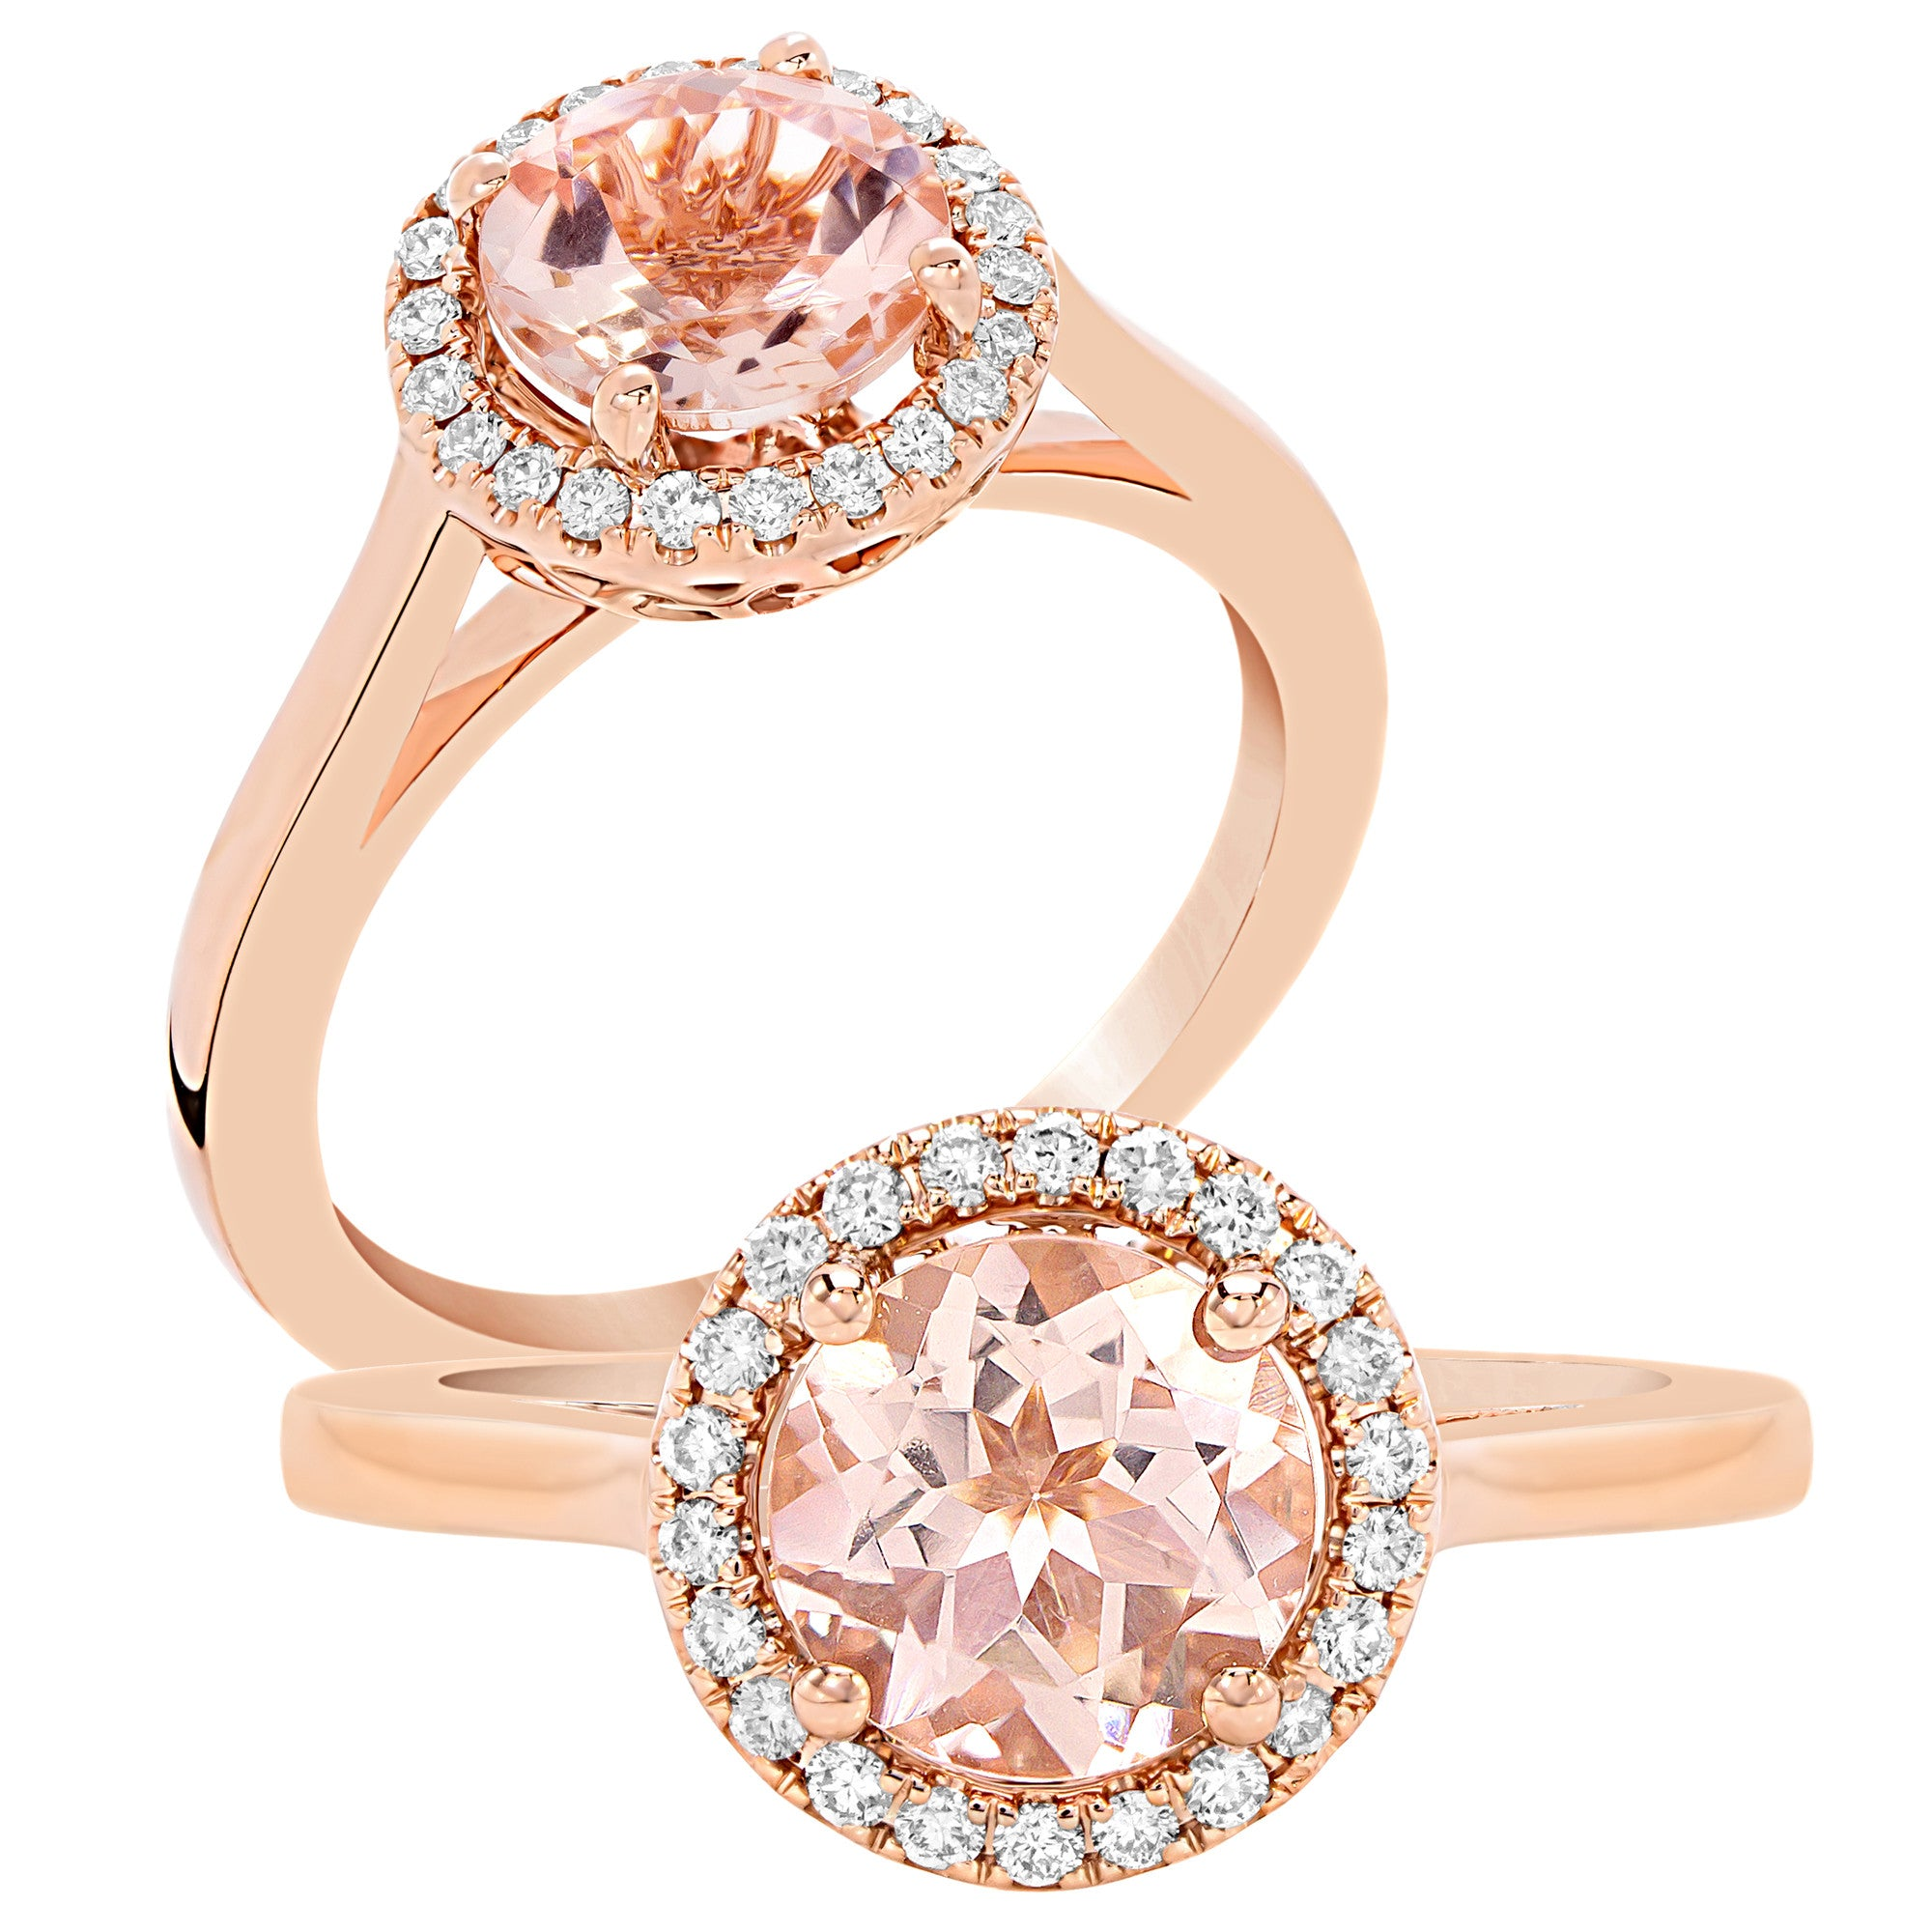 weddingringz amp band lovely ring engagement fresh dainty wedding rings morganite of half in set eternity xyz